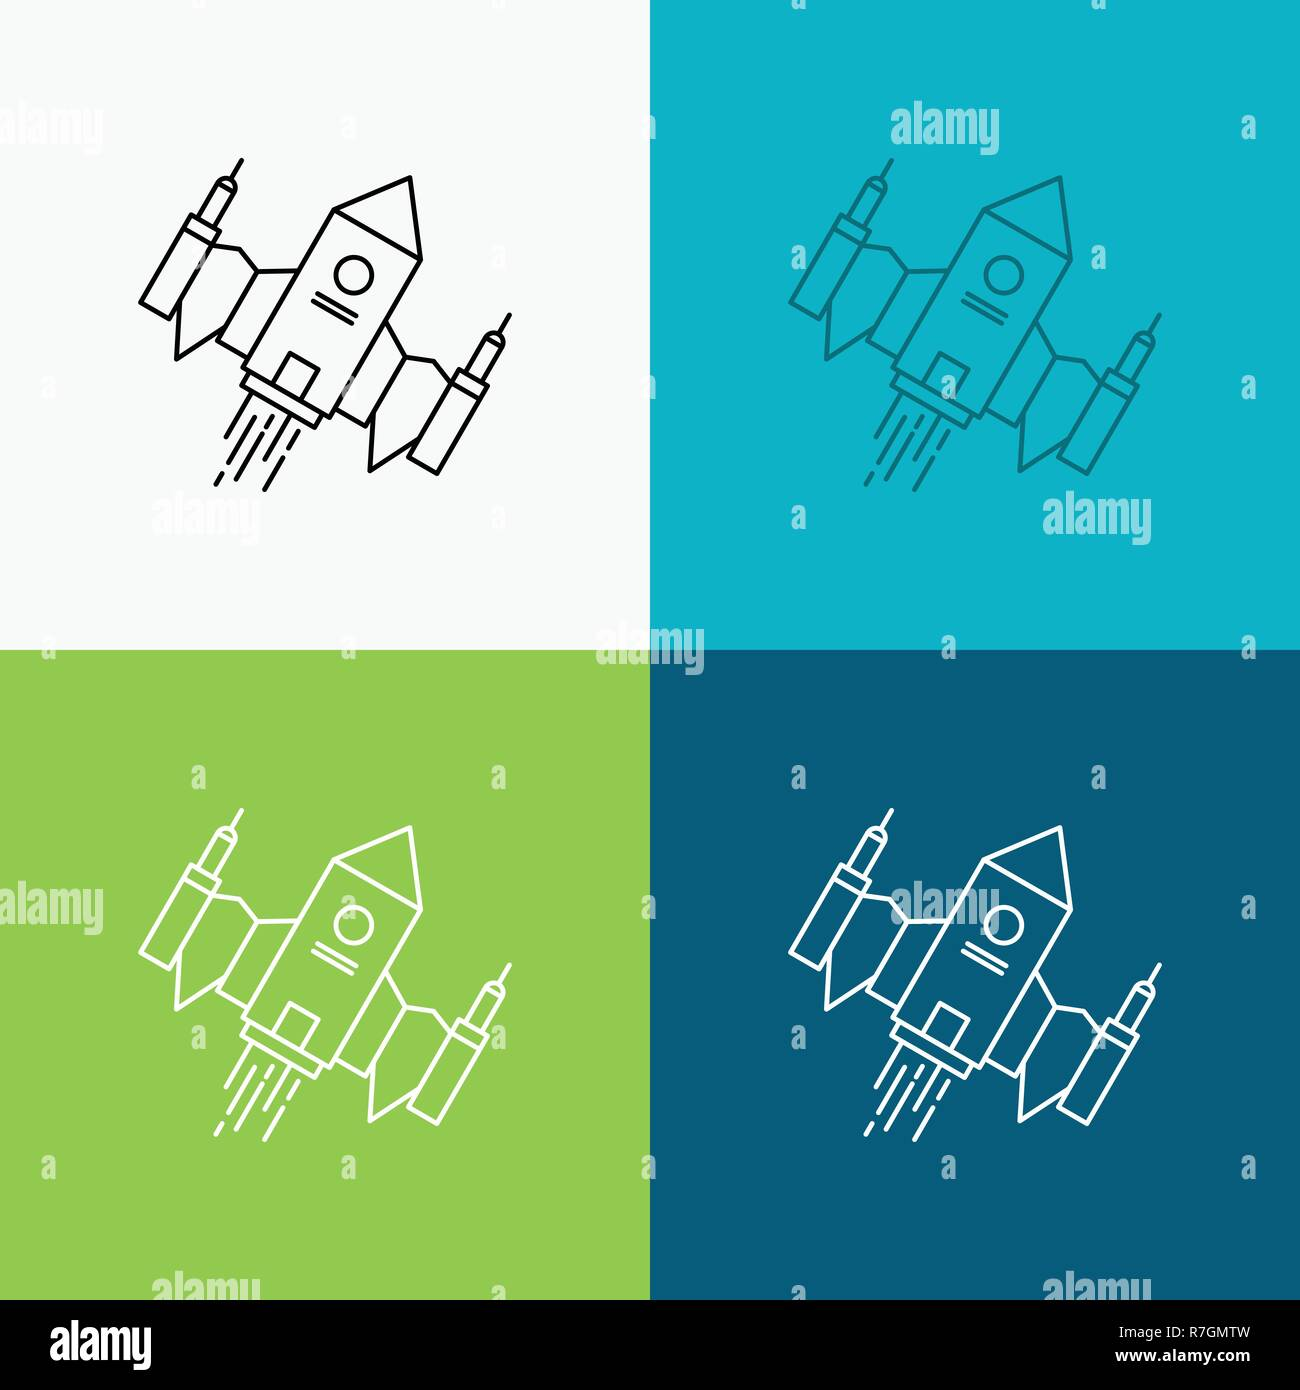 Galaxy Invaders Stock Photos Images Alamy Spaceship Engine Diagram Spacecraft Ship Space Alien Icon Over Various Background Line Style